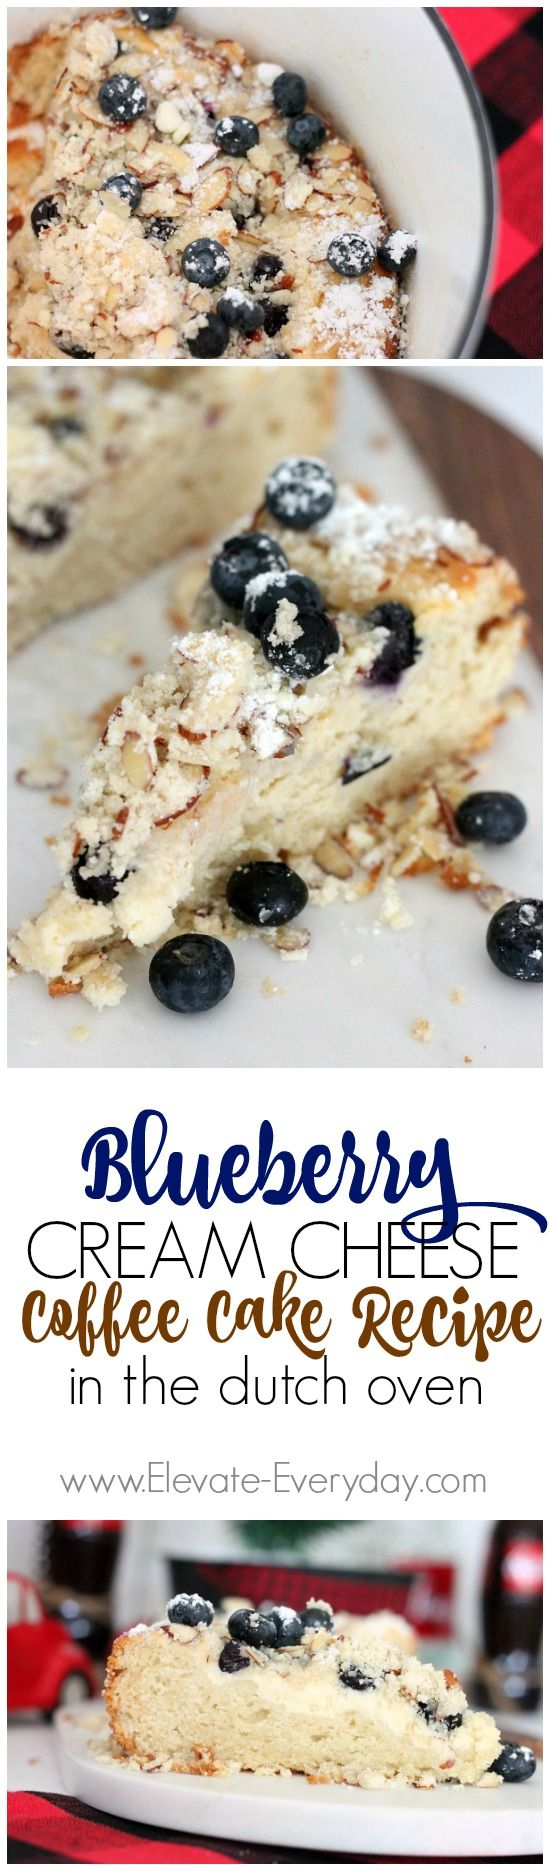 Dutch Oven Blueberry Cream Cheese Coffee Cake Recipe.